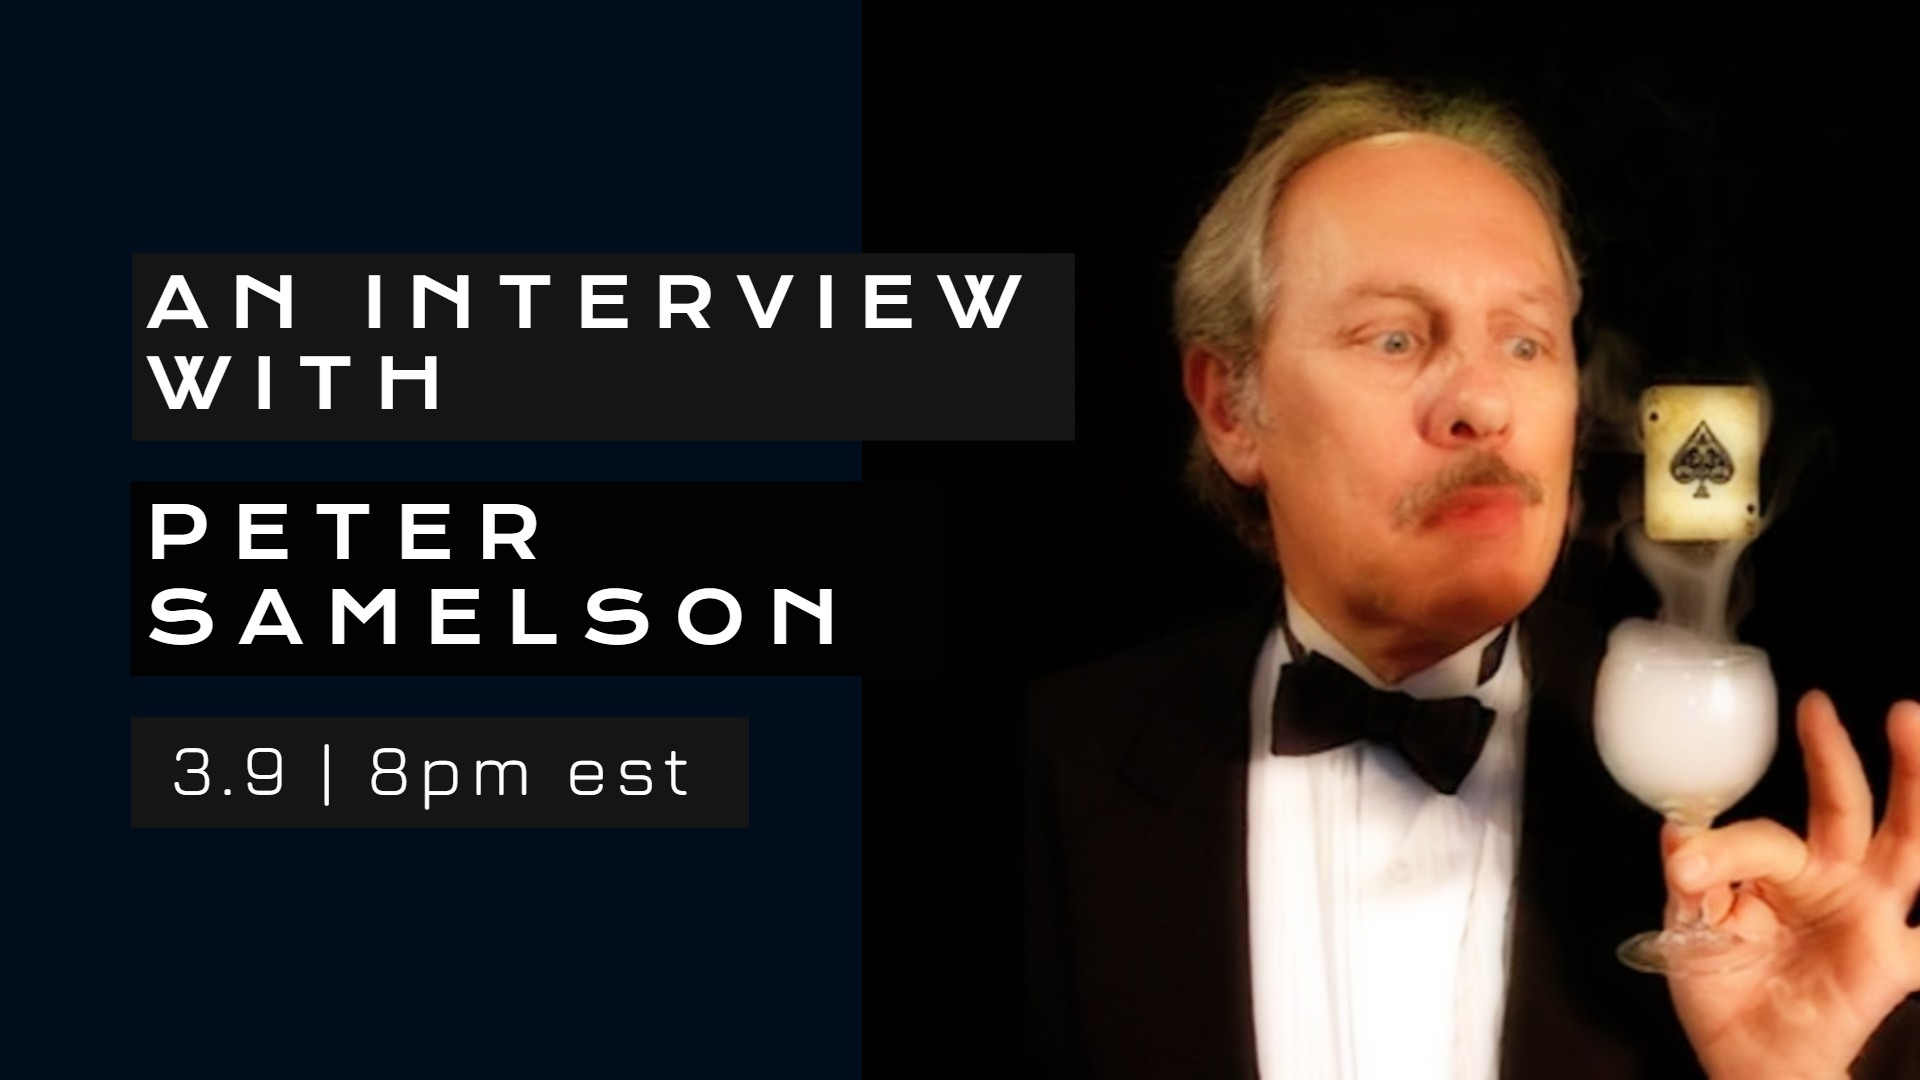 interview with peter samelson